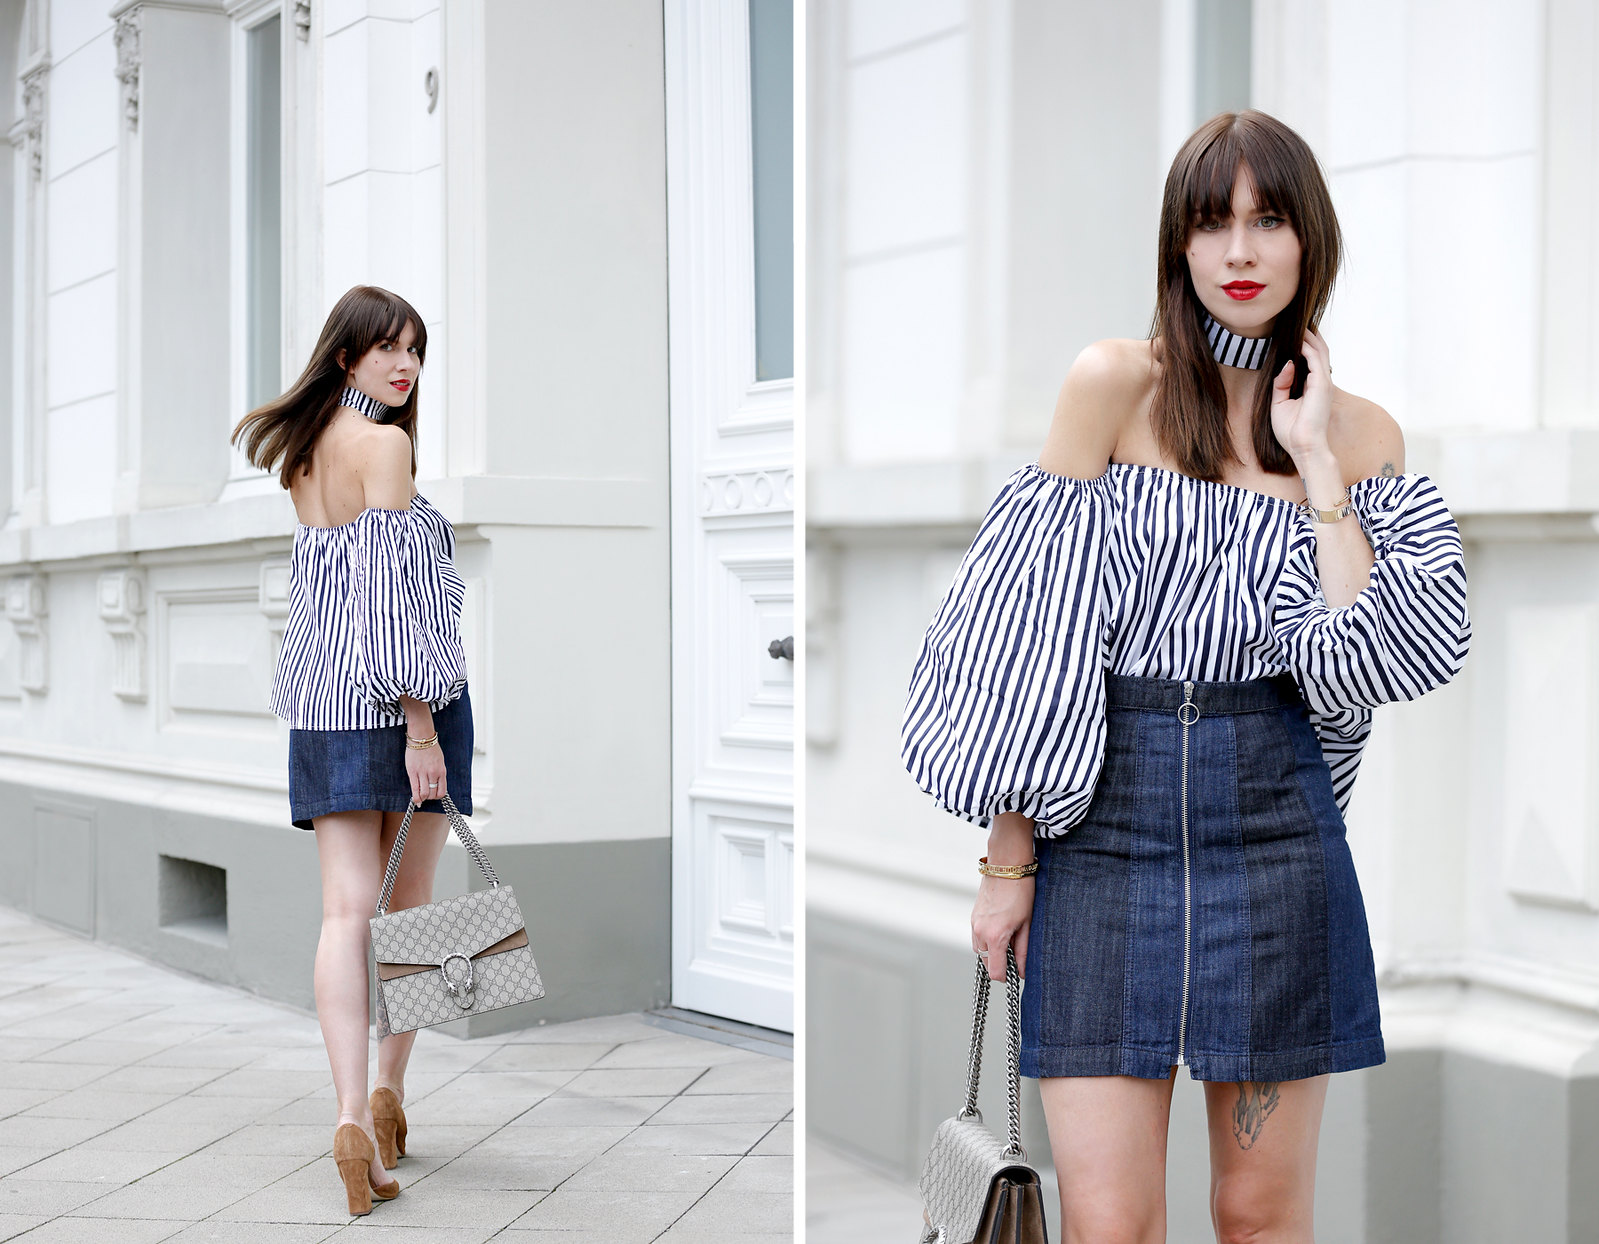 ootd outfit potd lookbook storets off shoulder stripe blouse chic mini denim skit seventies gucci dionysus bag luxury blogger fashionblog cats & dogs modeblogger berlin ricarda schernus dusseldorf fashionblog 4